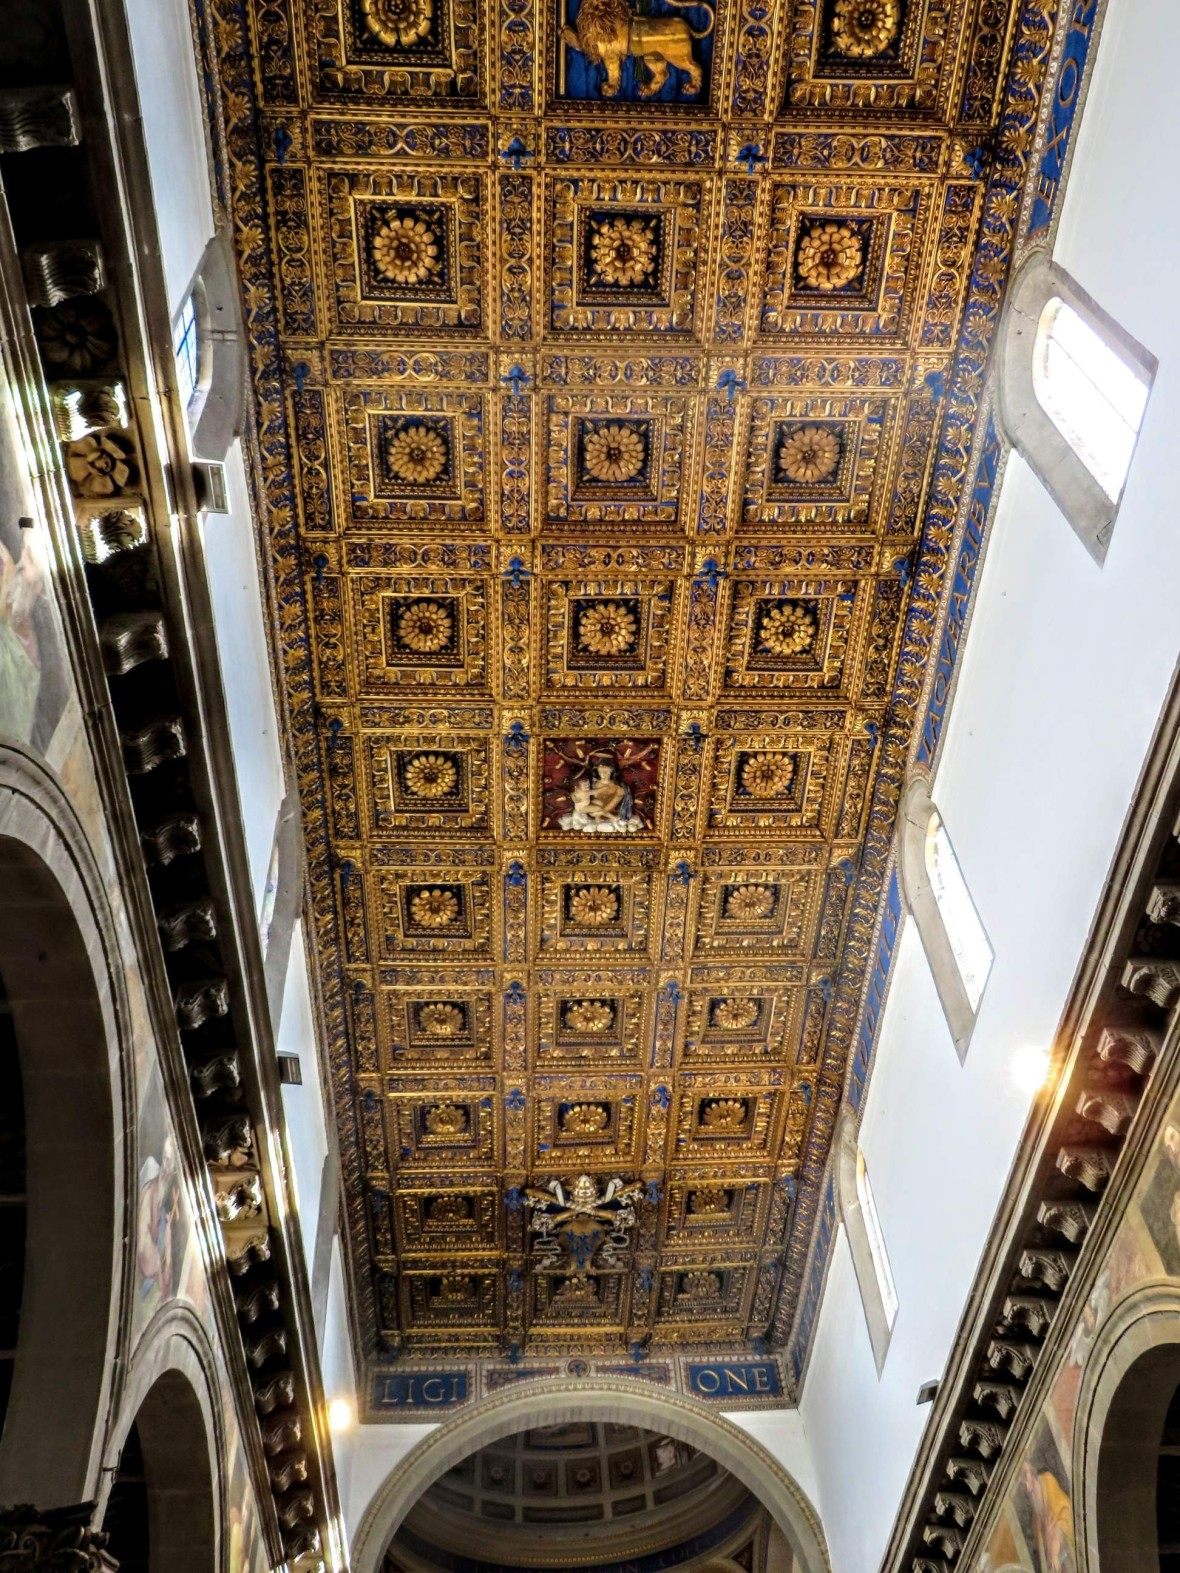 The ceiling is made of pure gold (roughly 70 kg)